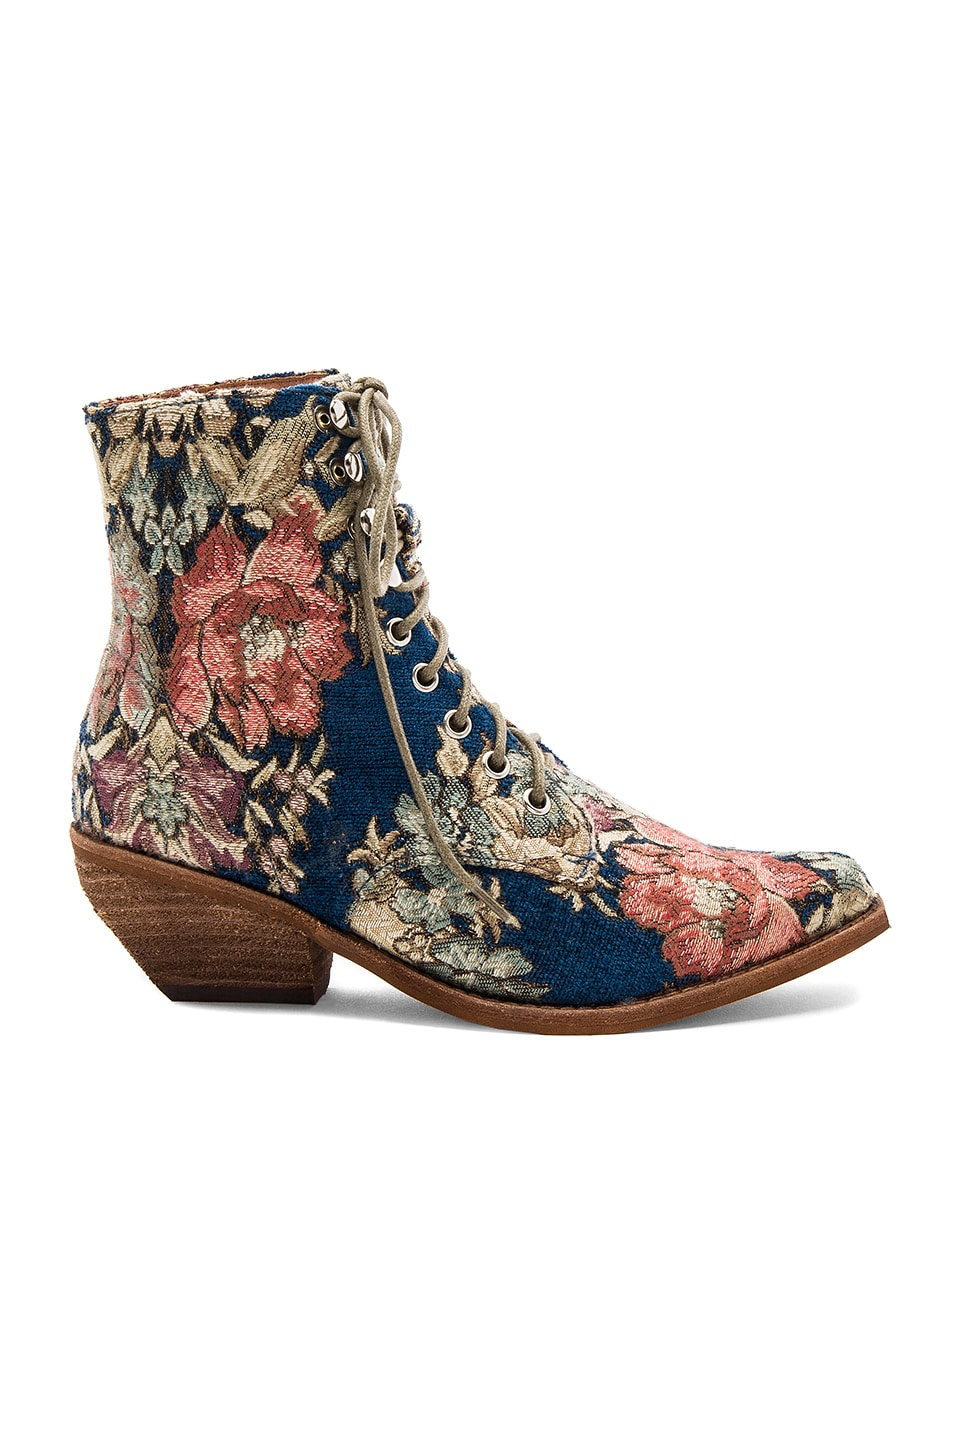 Jeffrey Campbell x REVOLVE Elmcroft Booties in Blue Beige Tapestry